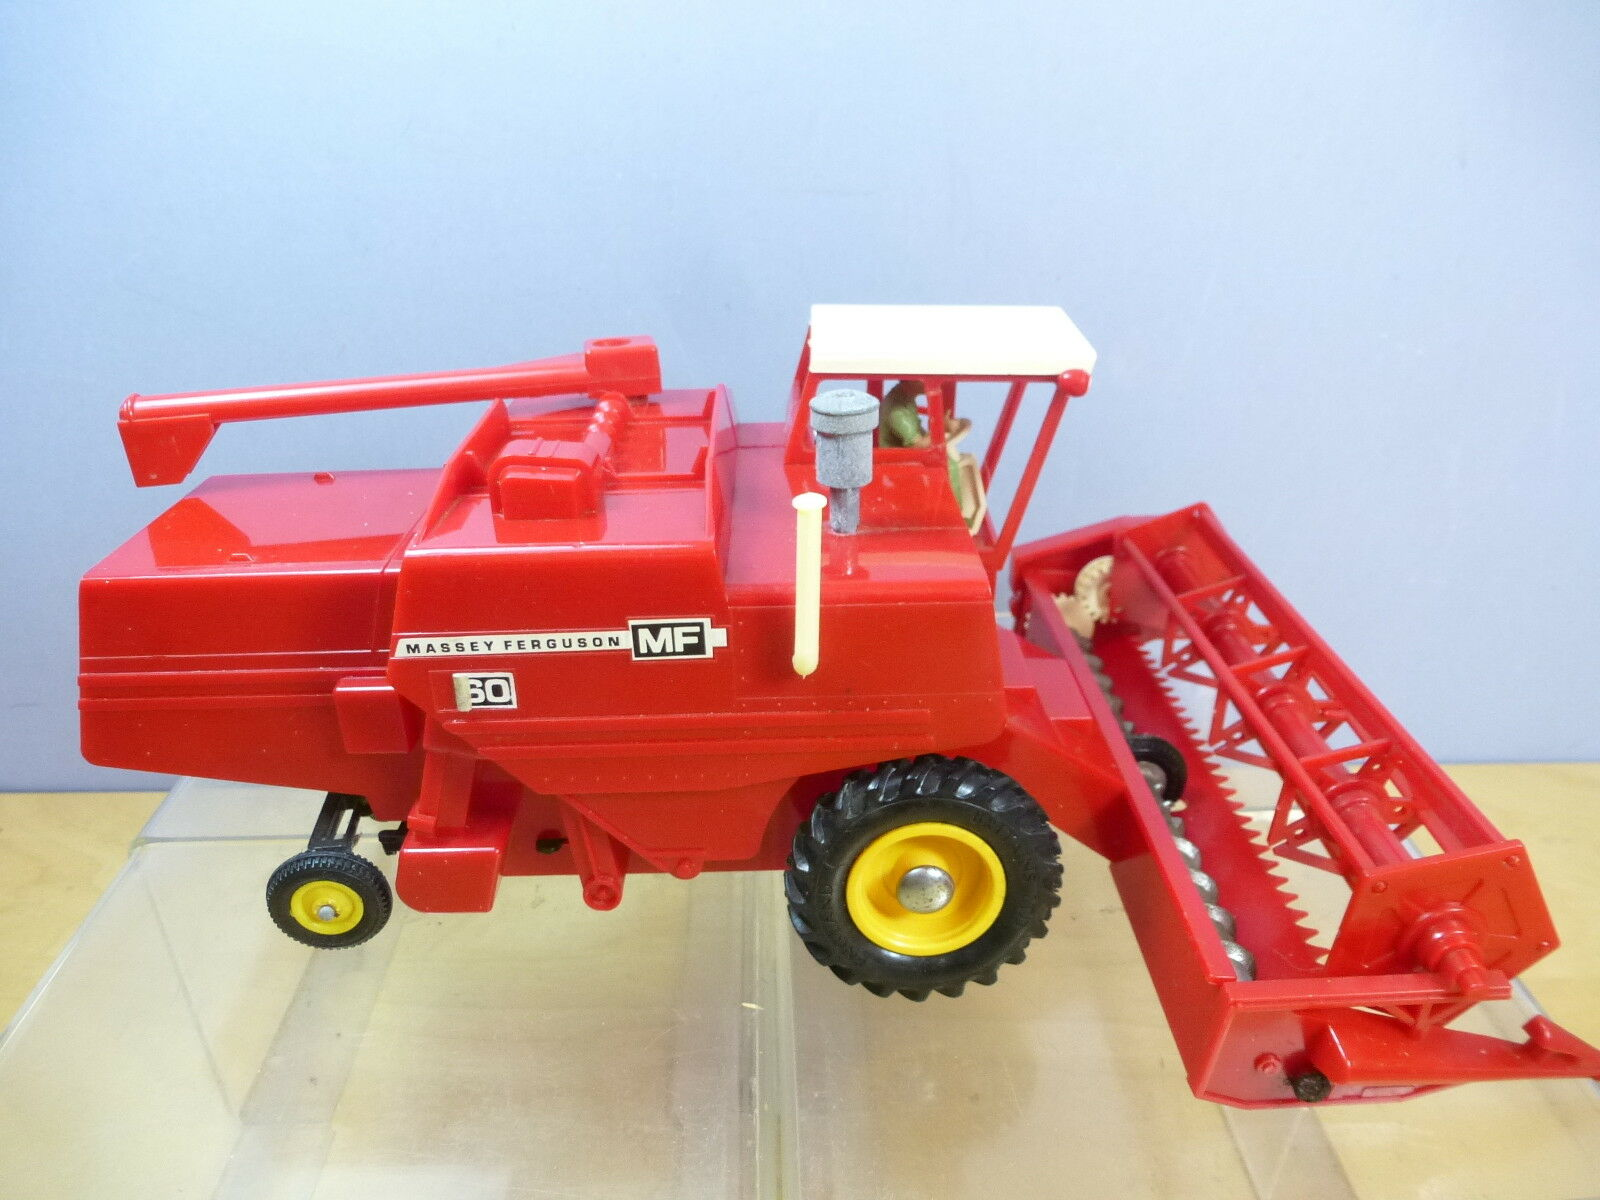 VINTAGE BRITAINS MODEL No.9570    MASSEY FERGUSON   COMBINE HARVESTER